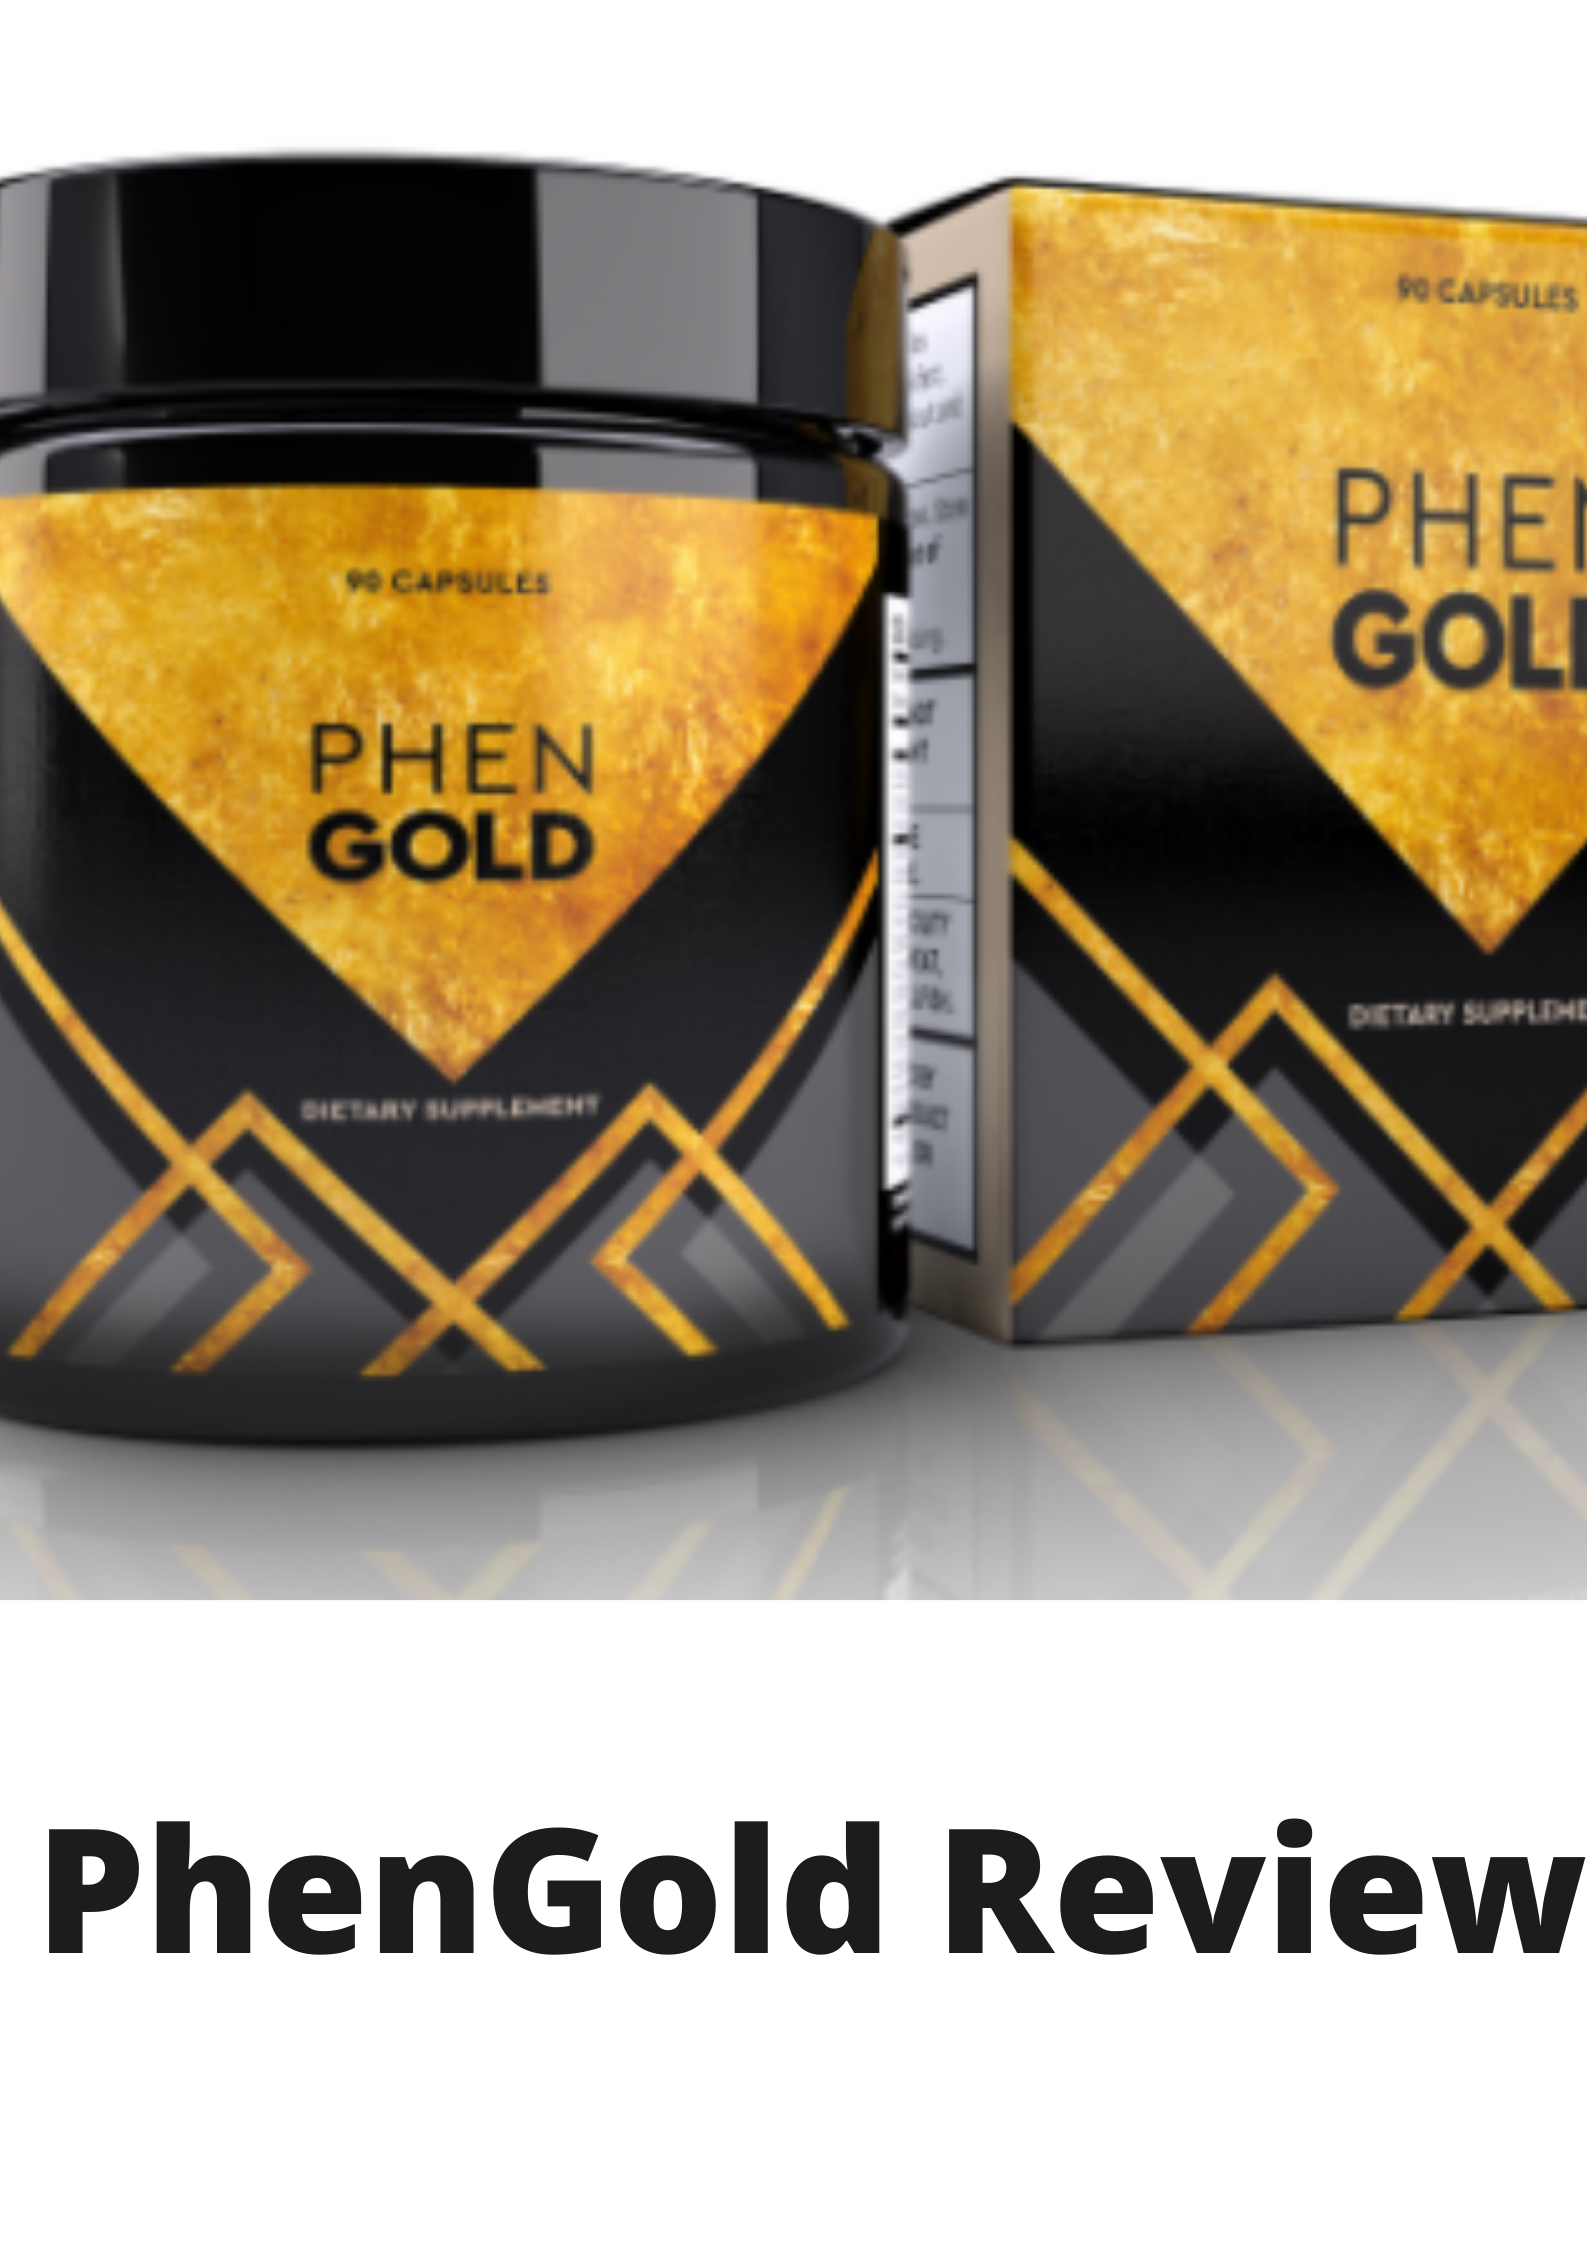 PhenGold Review: Is it worth the money?